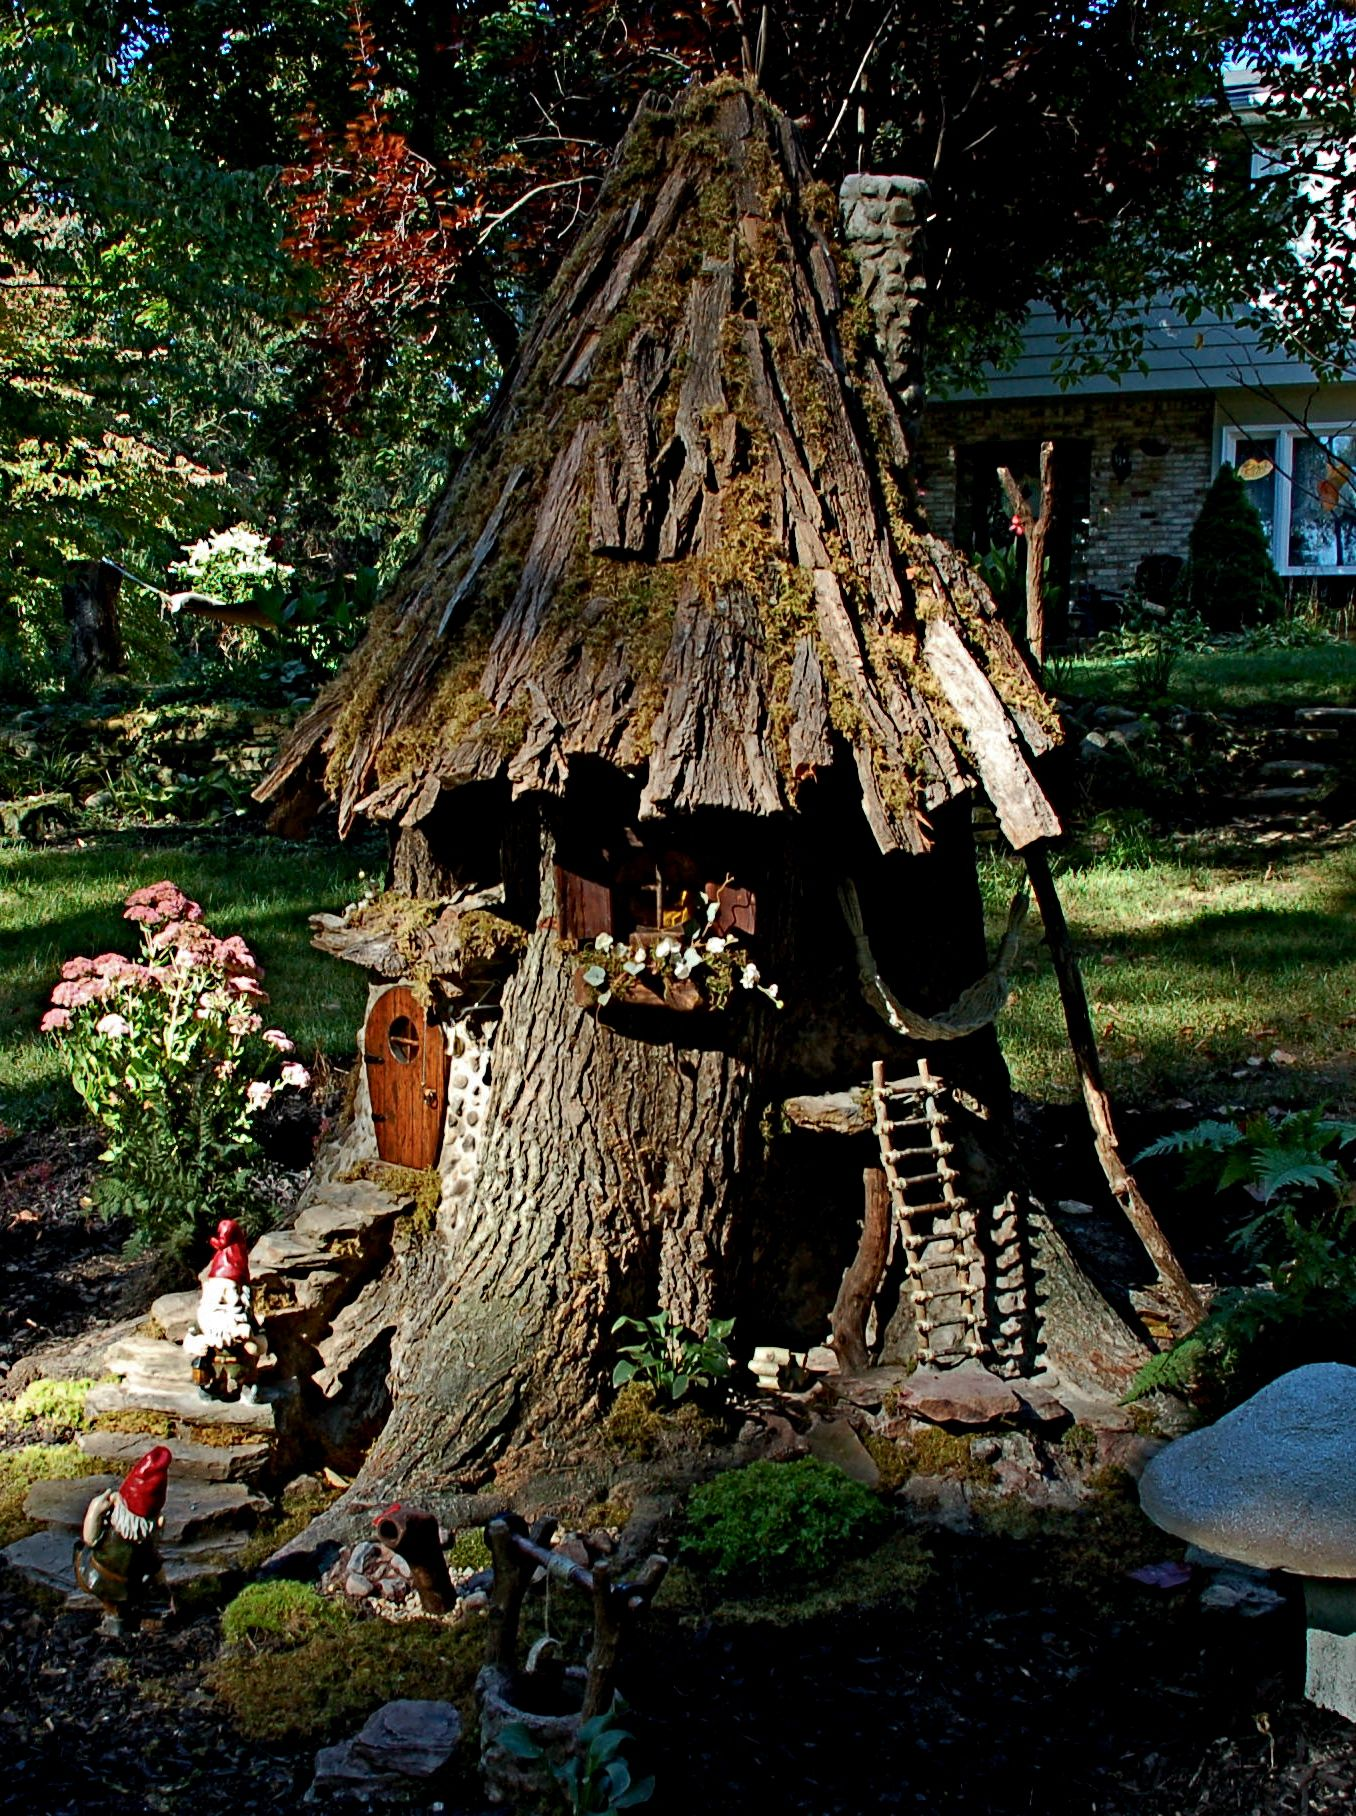 Tree stump fairy house - 7 Foot Gnome House From Old Tree Trunk